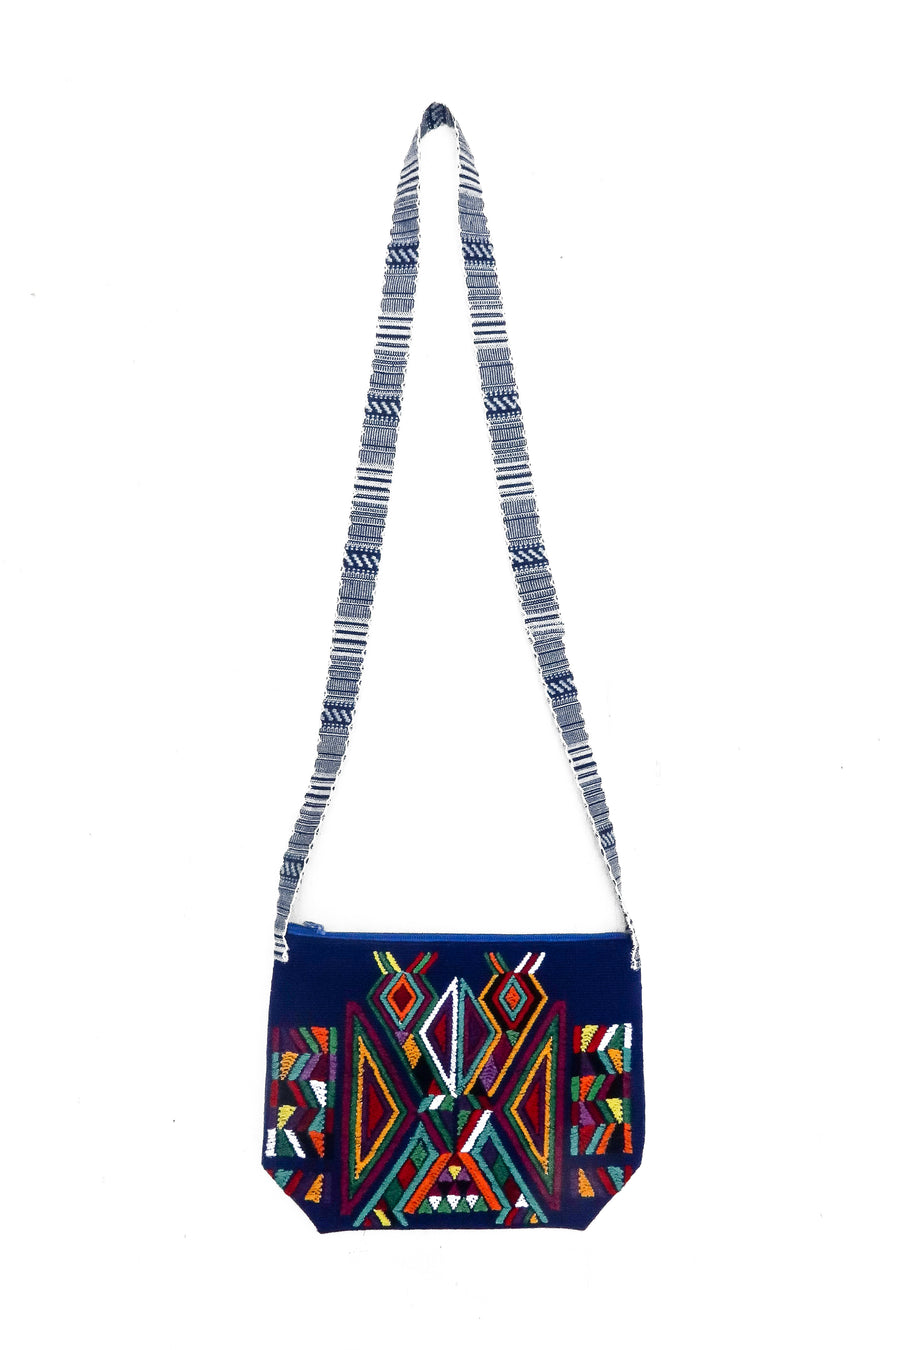 Quiché Eagle Handbag Blue